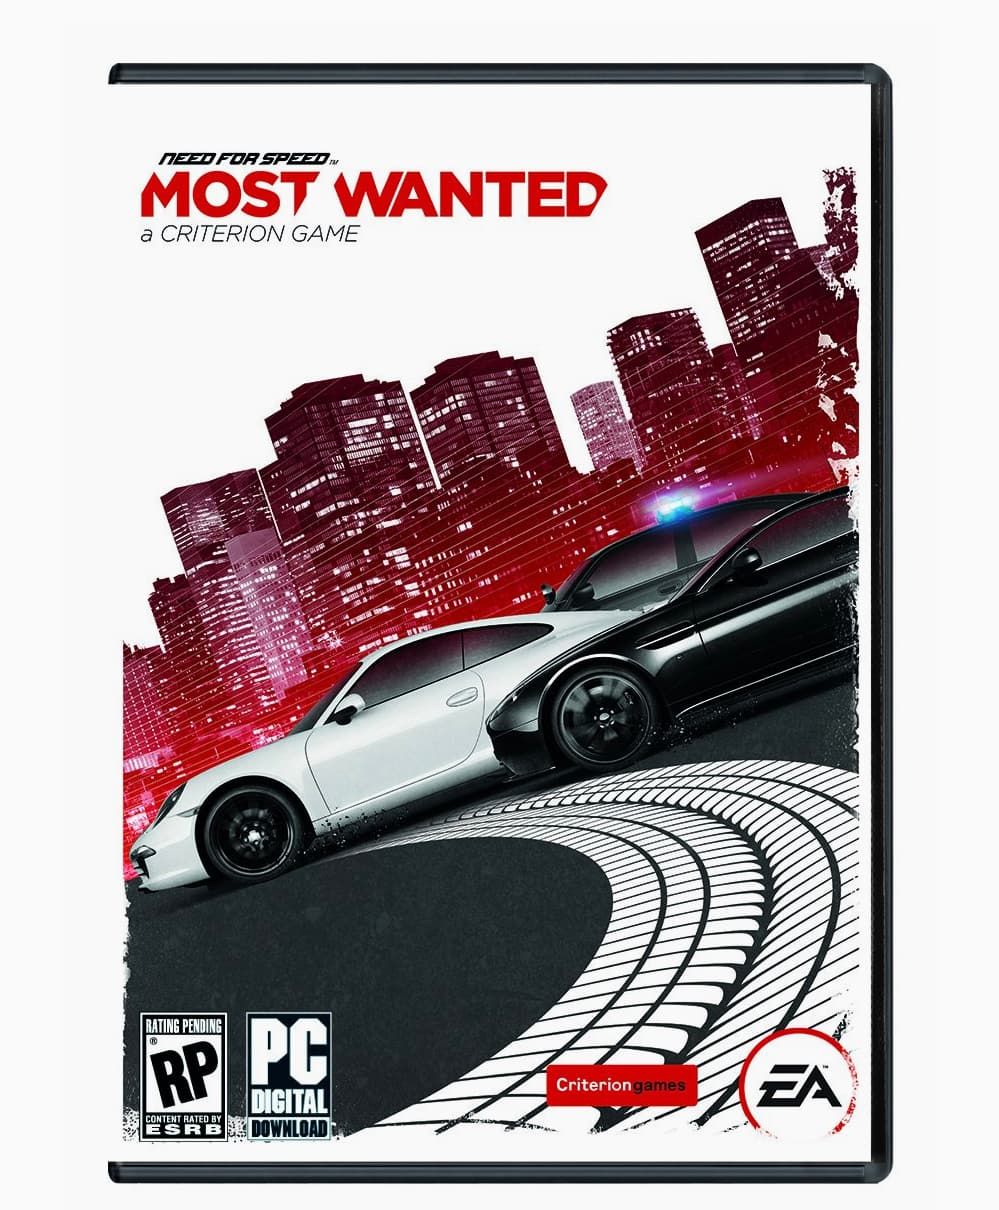 Amazon: Need for Speed Most Wanted [Online Game Code] $1.99